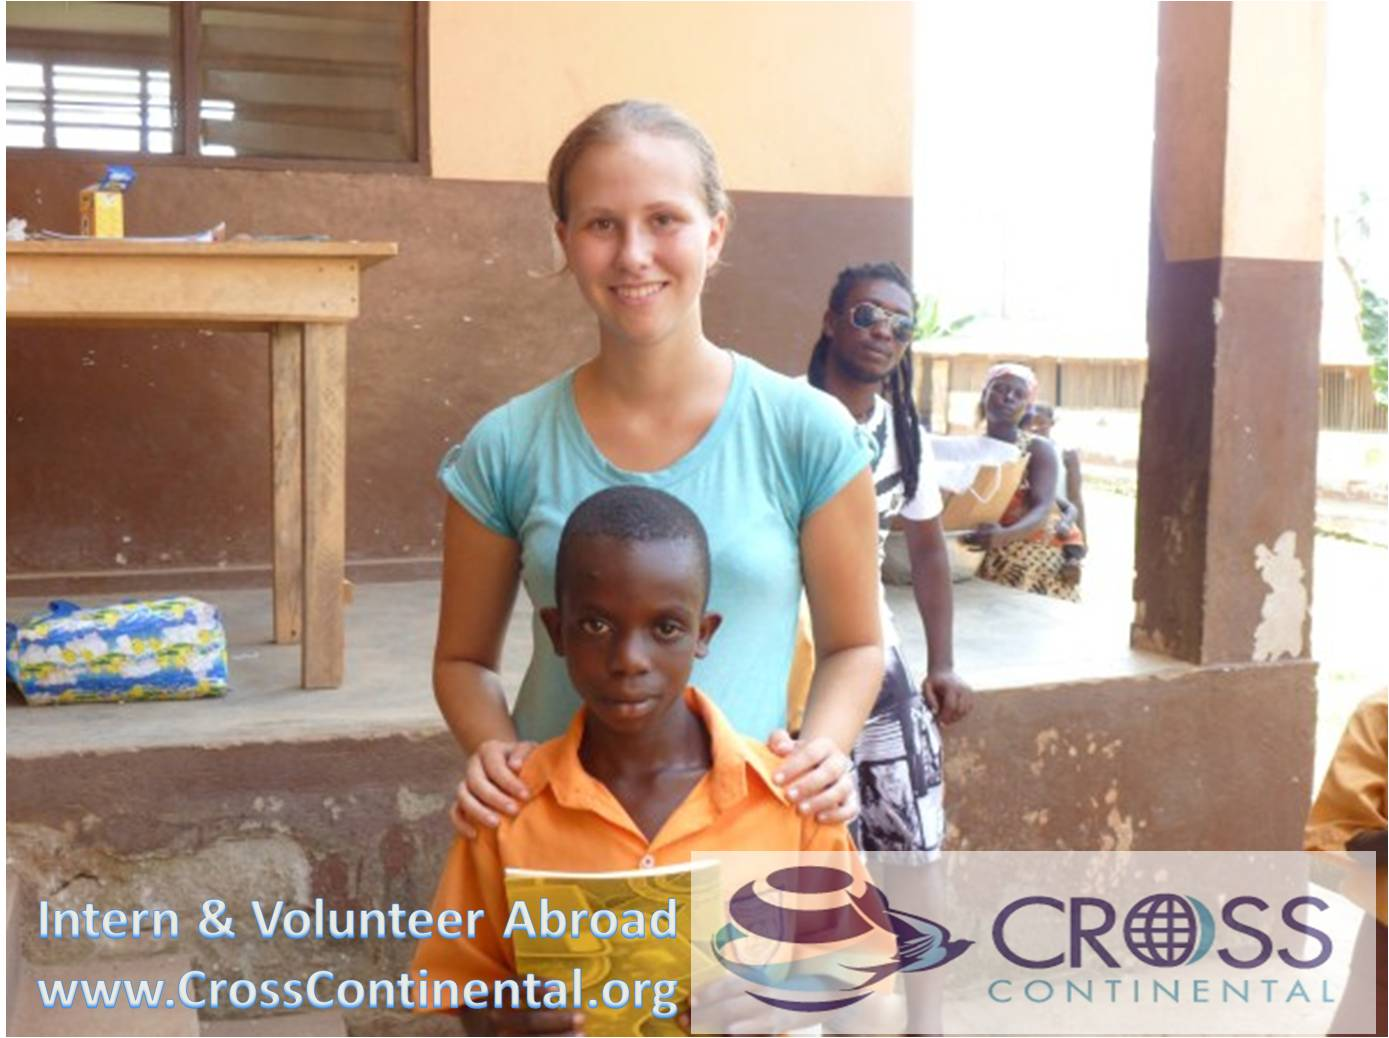 International volunteer and intern abroad Ghana Africa